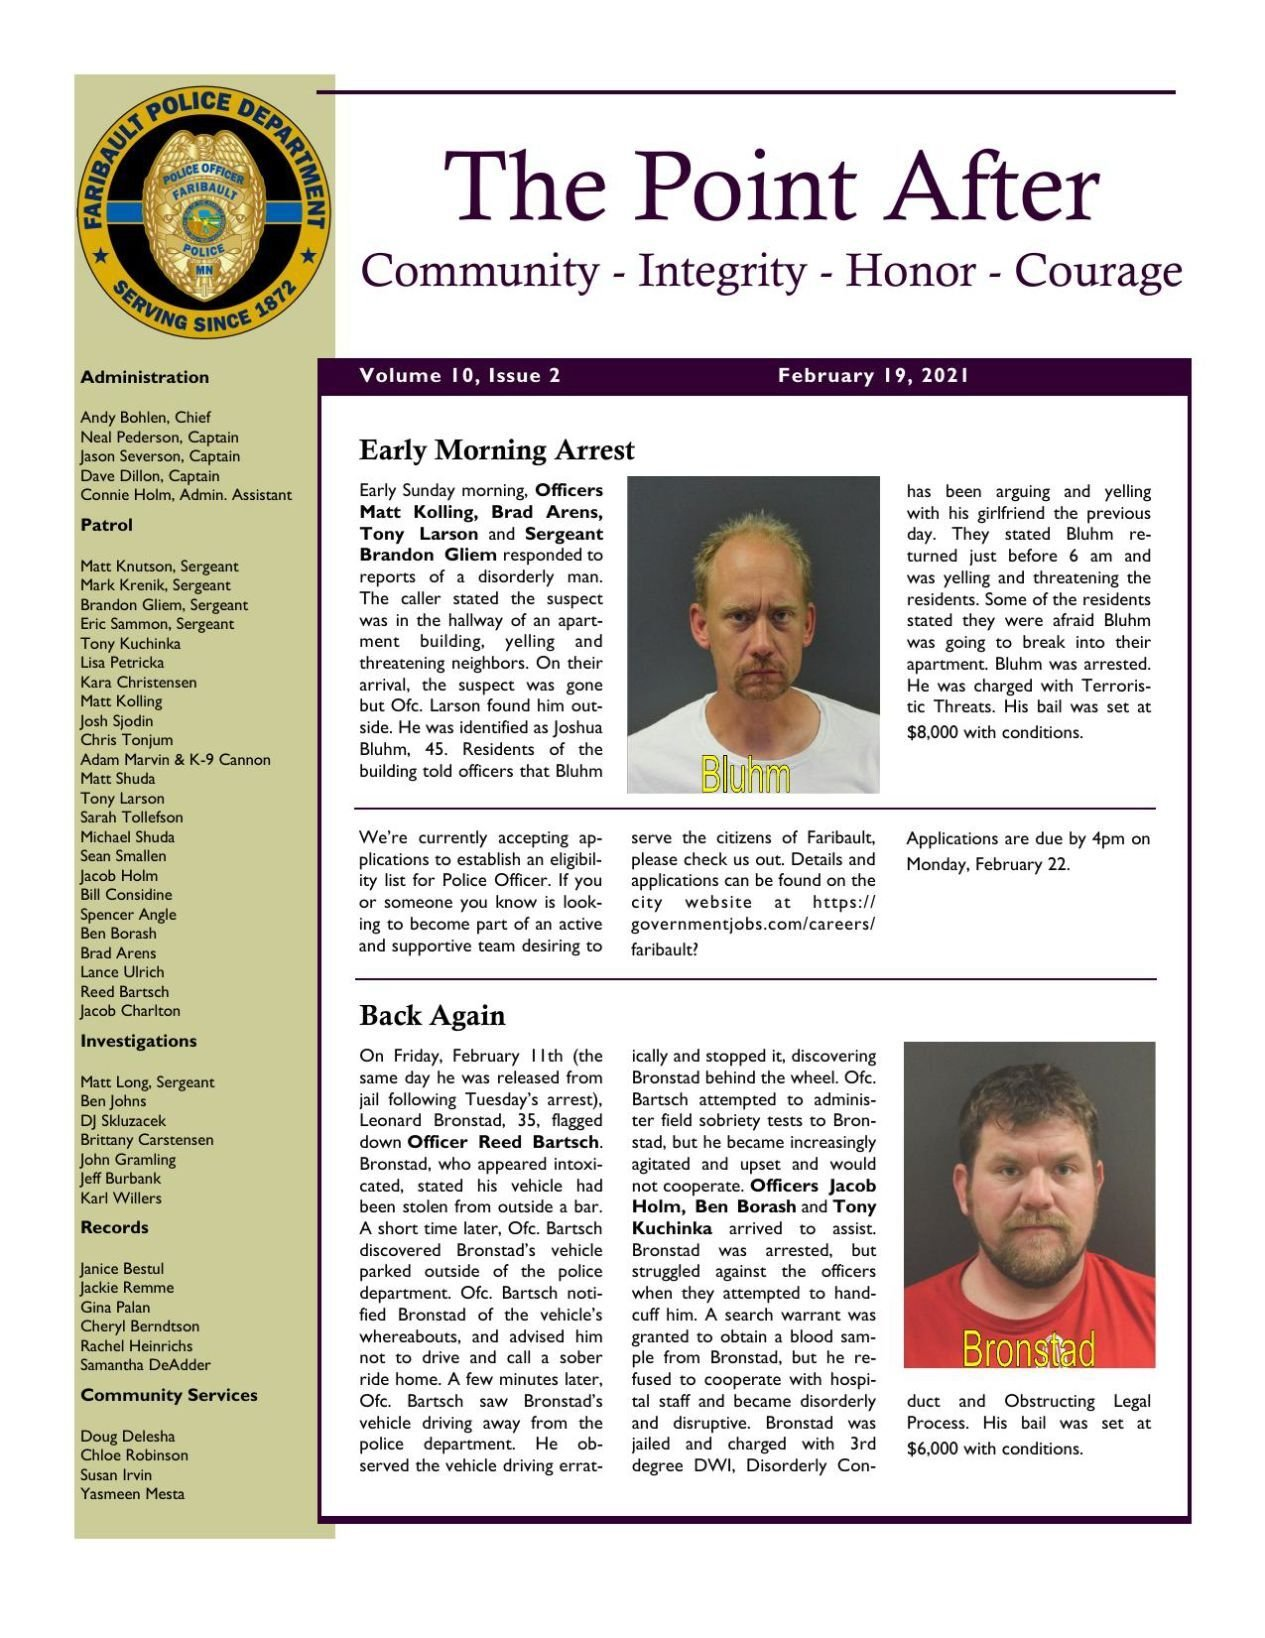 The Point After, Faribault Police Dept. weekly newsletter - Feb. 19